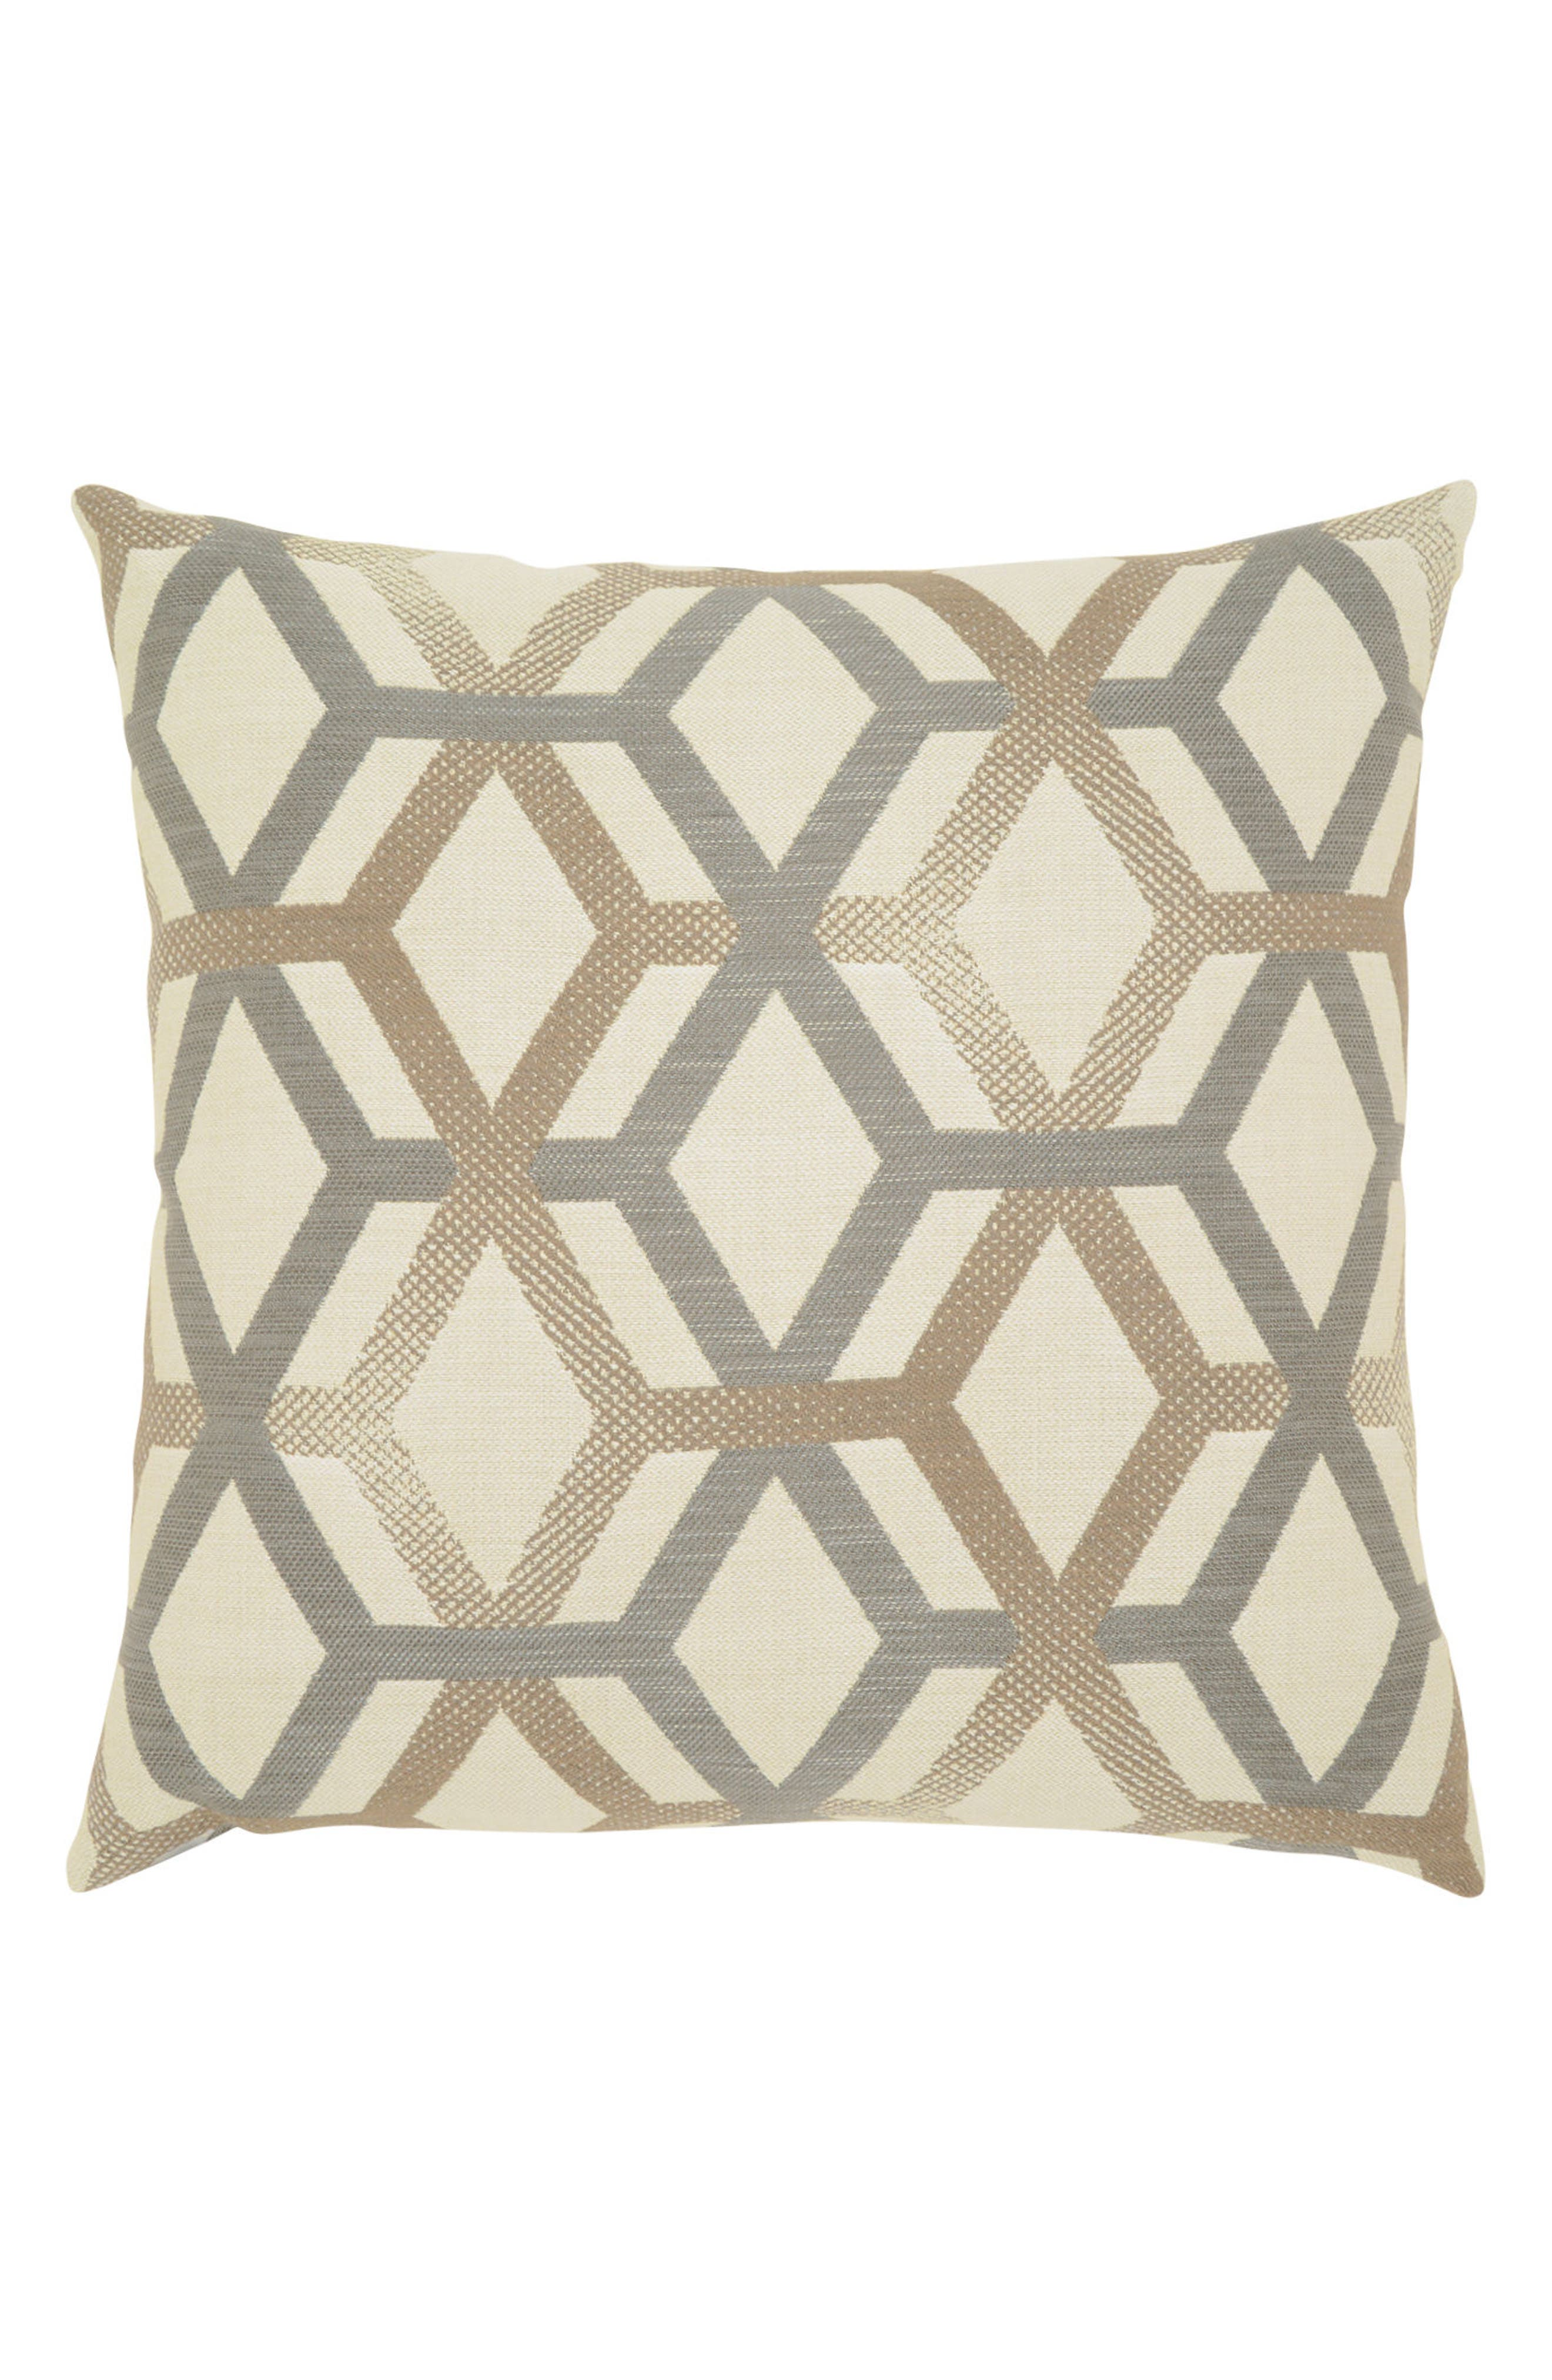 Lustrous Lines Indoor/Outdoor Accent Pillow,                         Main,                         color, Ivory/ Grey